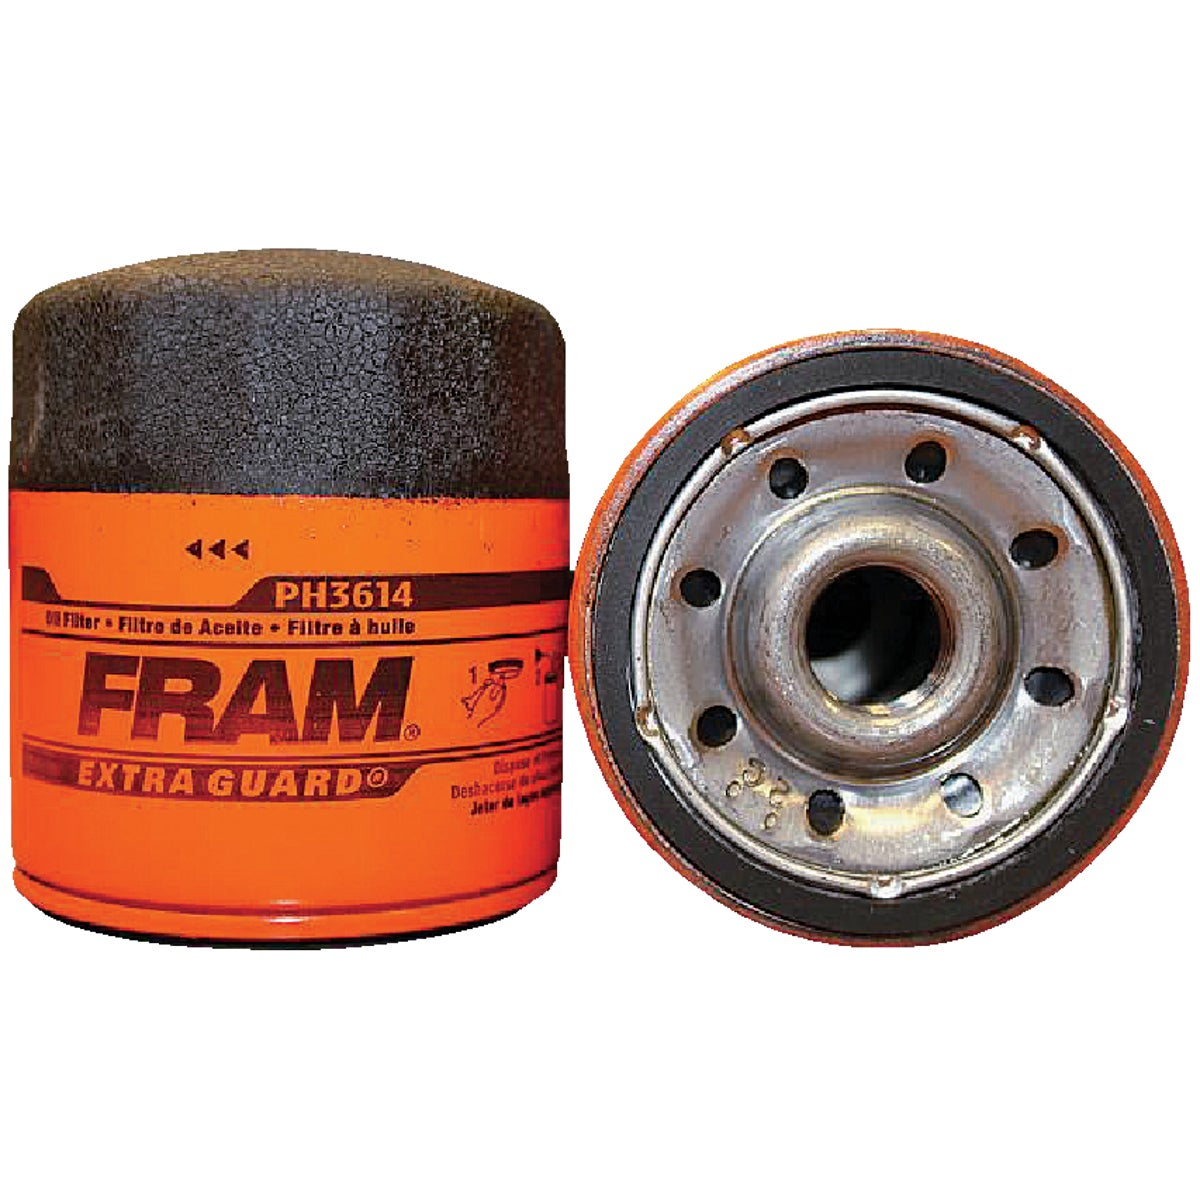 OIL FILTER - PH3614 by Fram Group